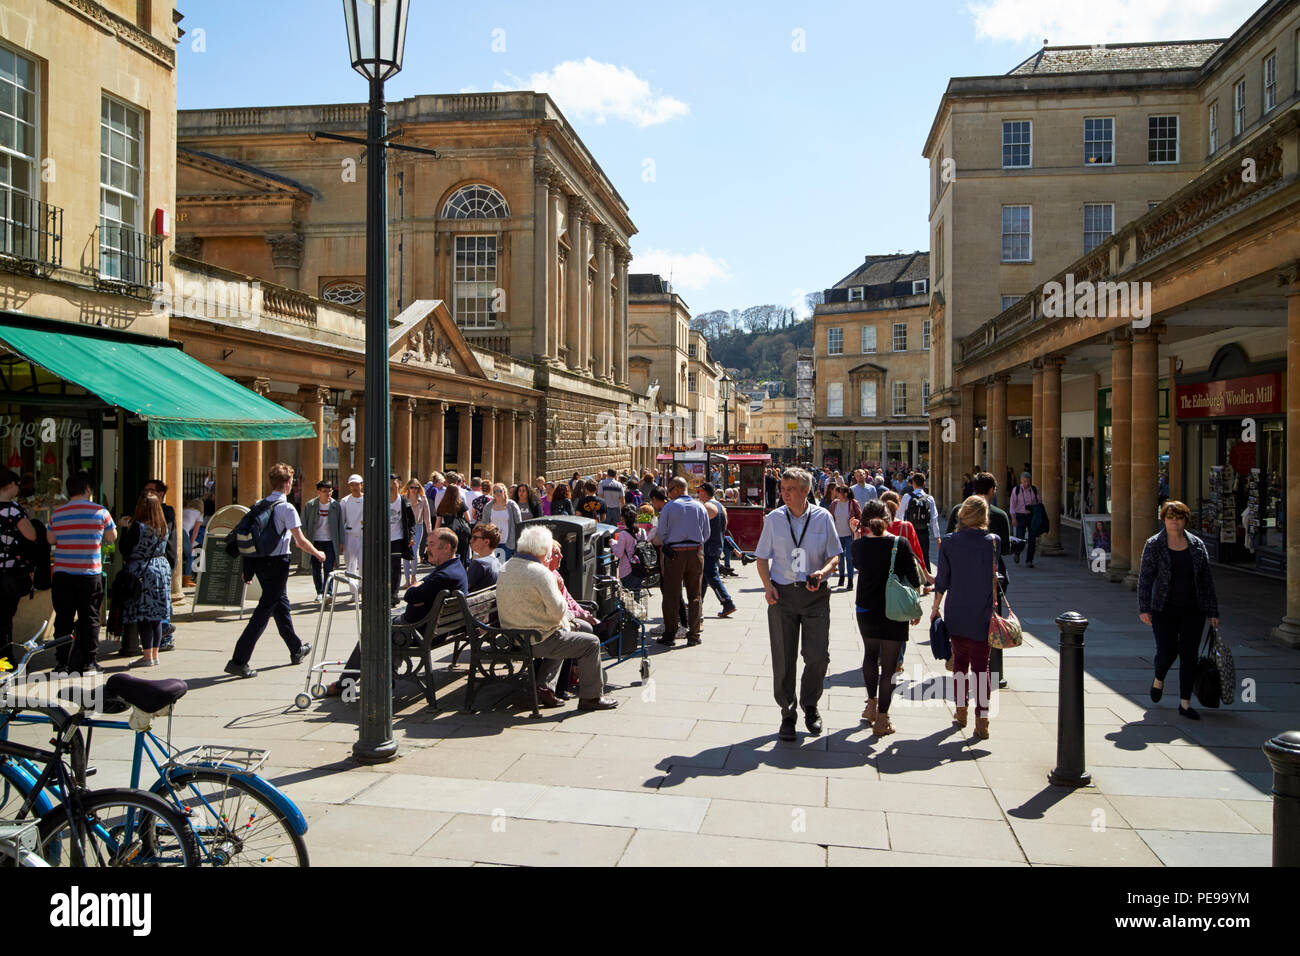 busy stall street shopping street in the city centre of Bath England UK - Stock Image